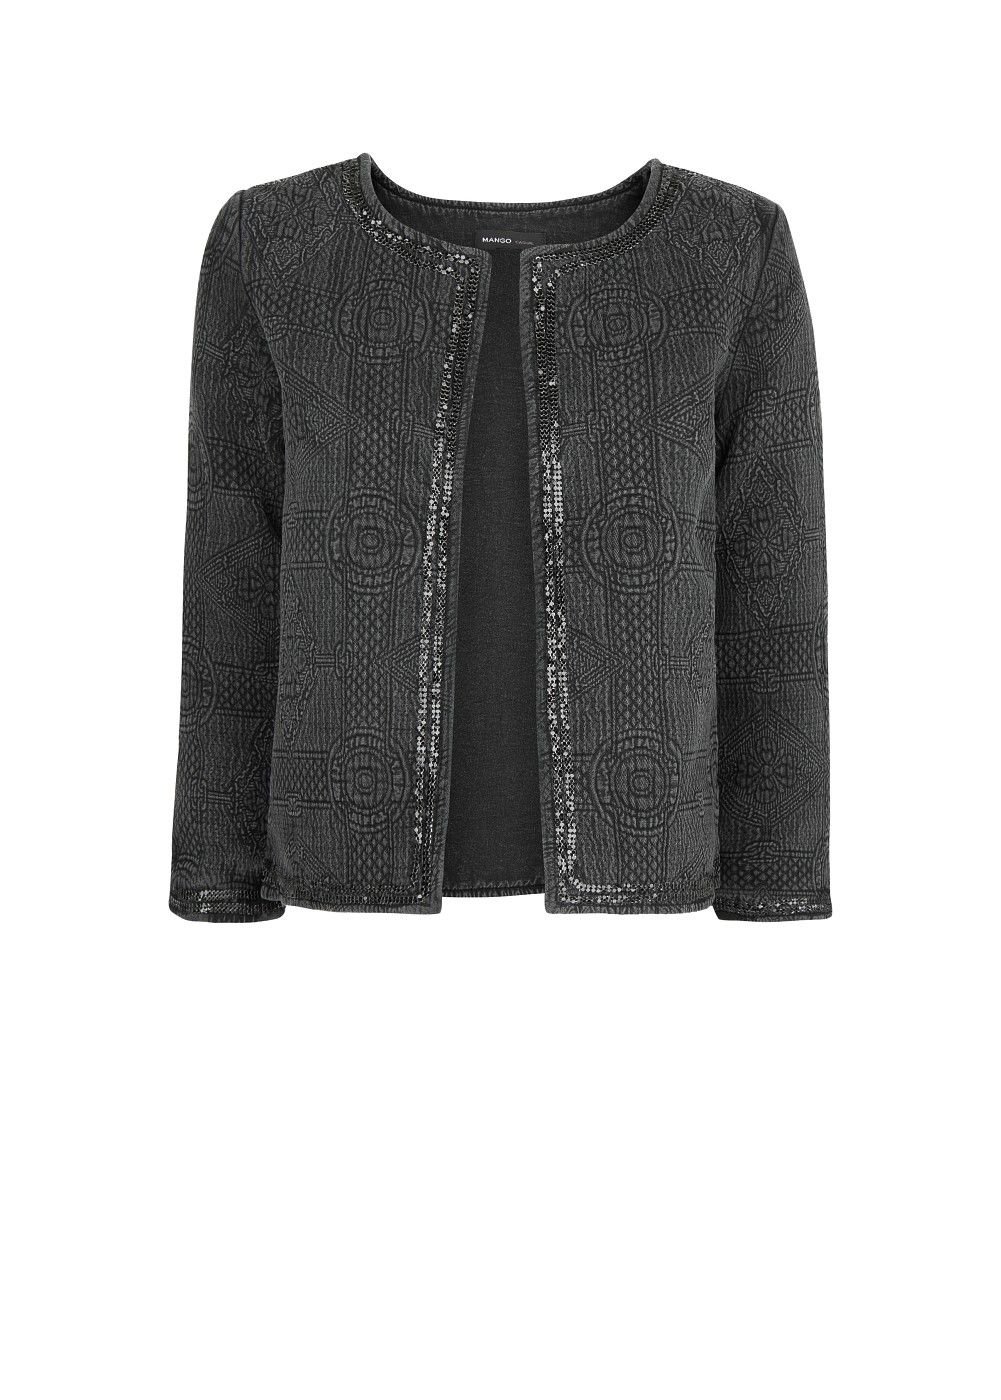 Trim textured jacket